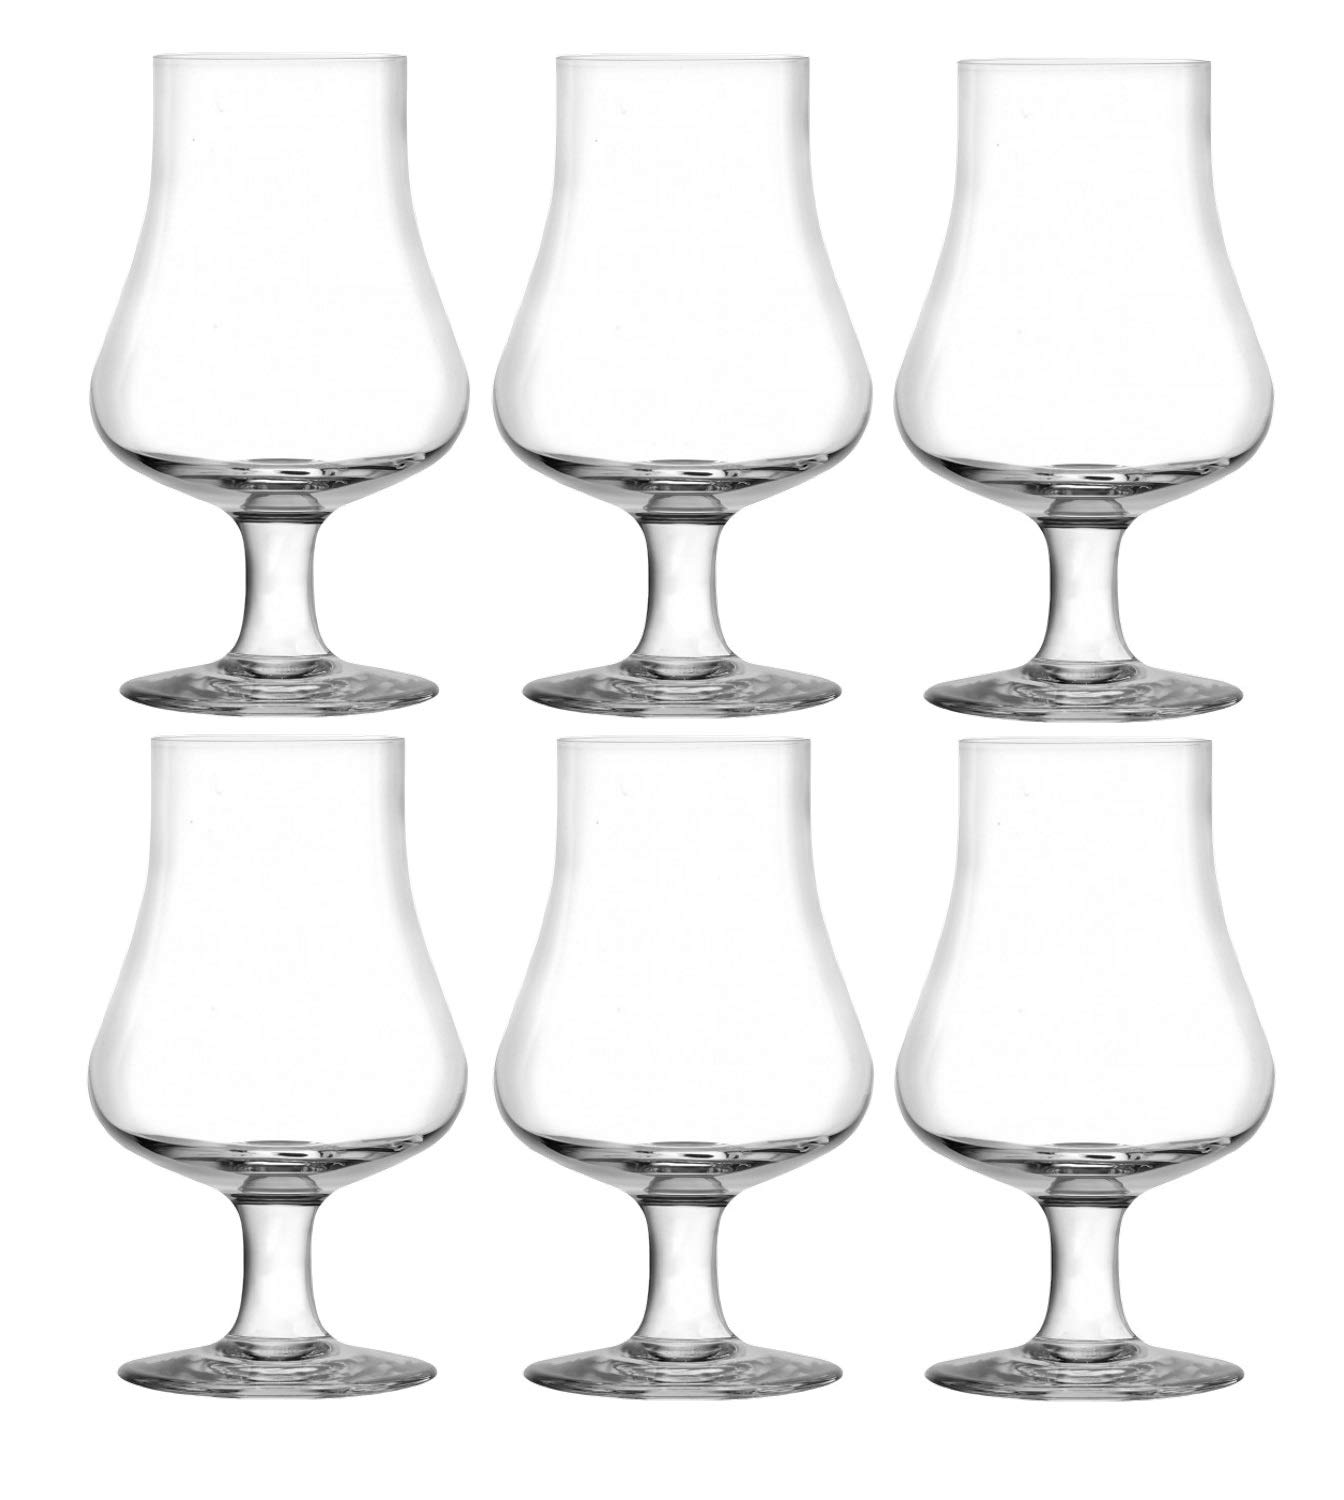 Stolzle Wine, Whisky and Beer Tasting and Nosing Glass Short Stem 6.75oz (1) Stolze